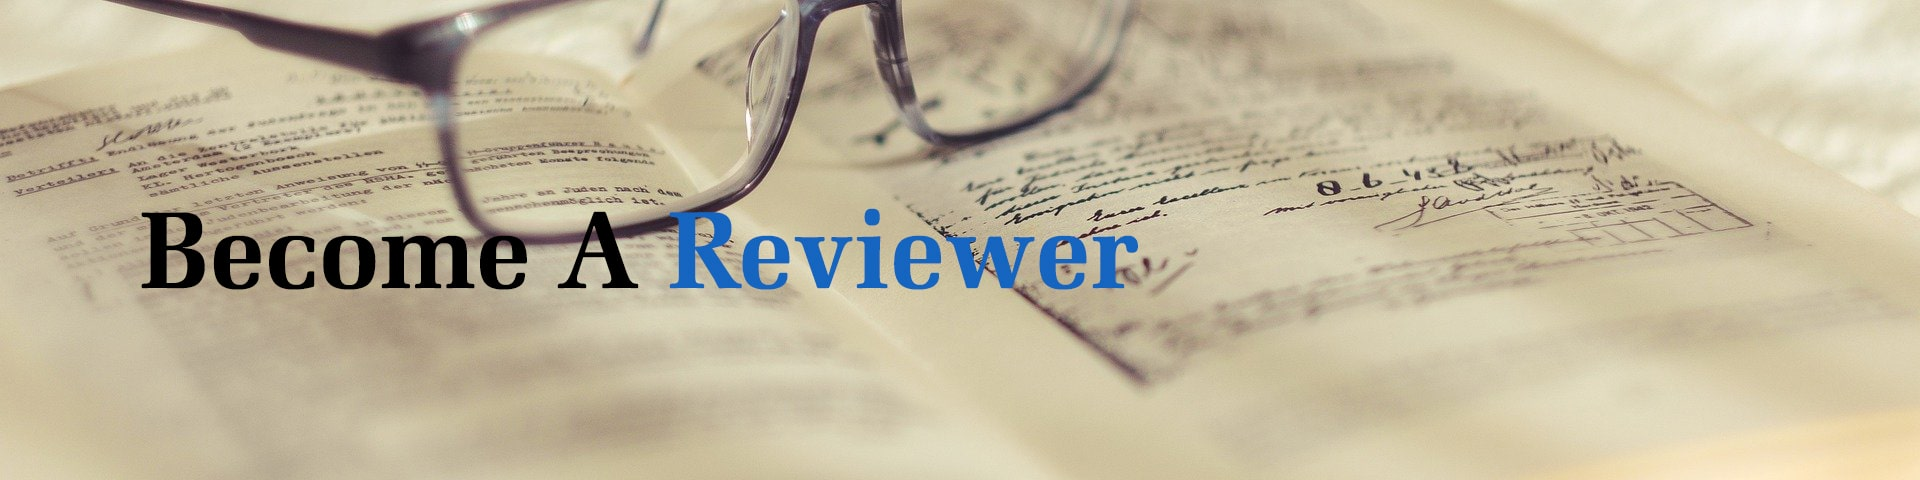 Become A Reviewer